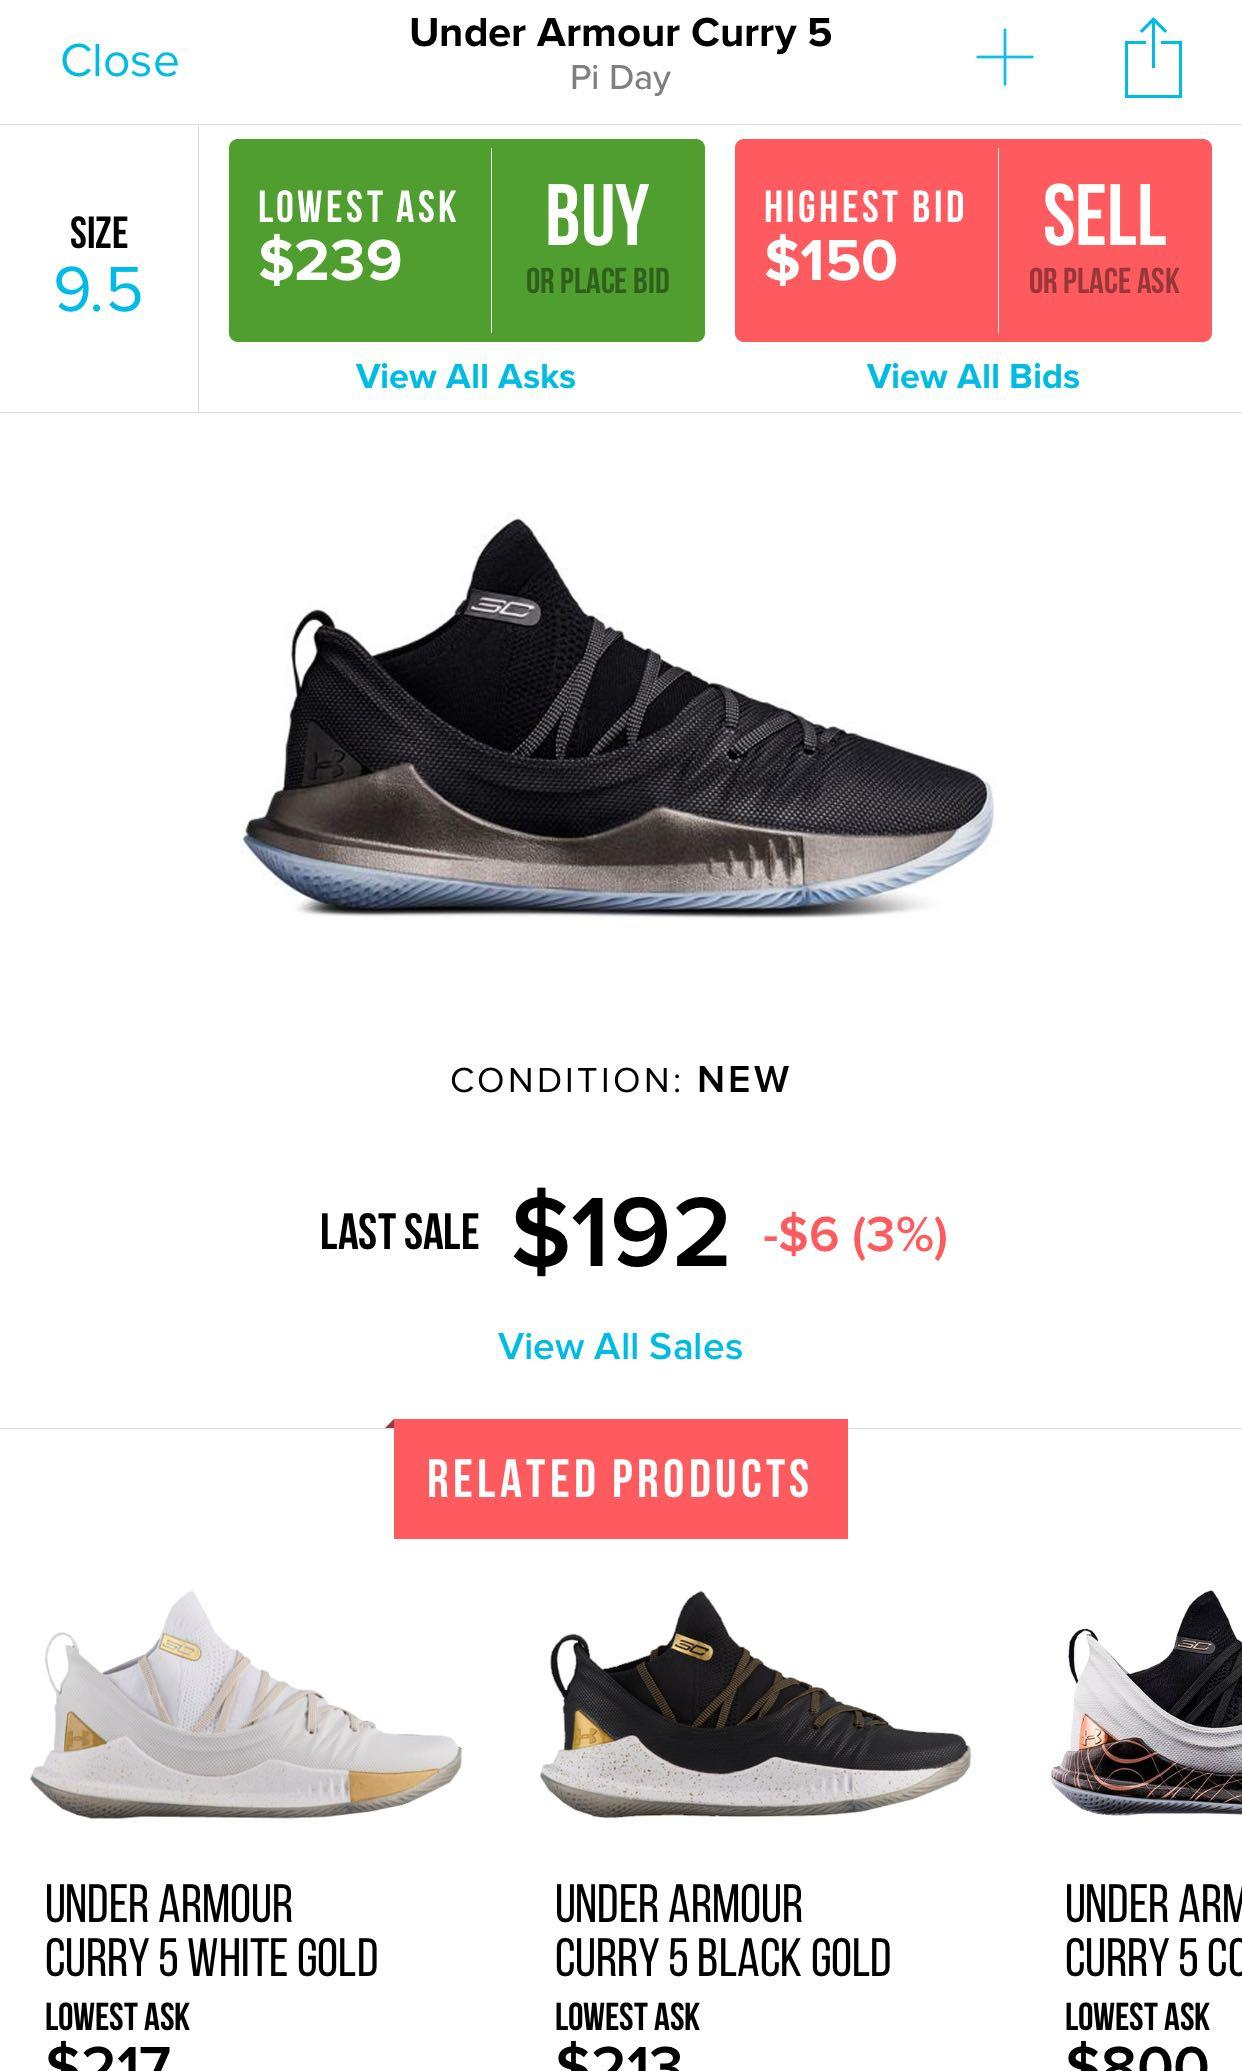 Under Armour Curry 5 Pi Day, Men's